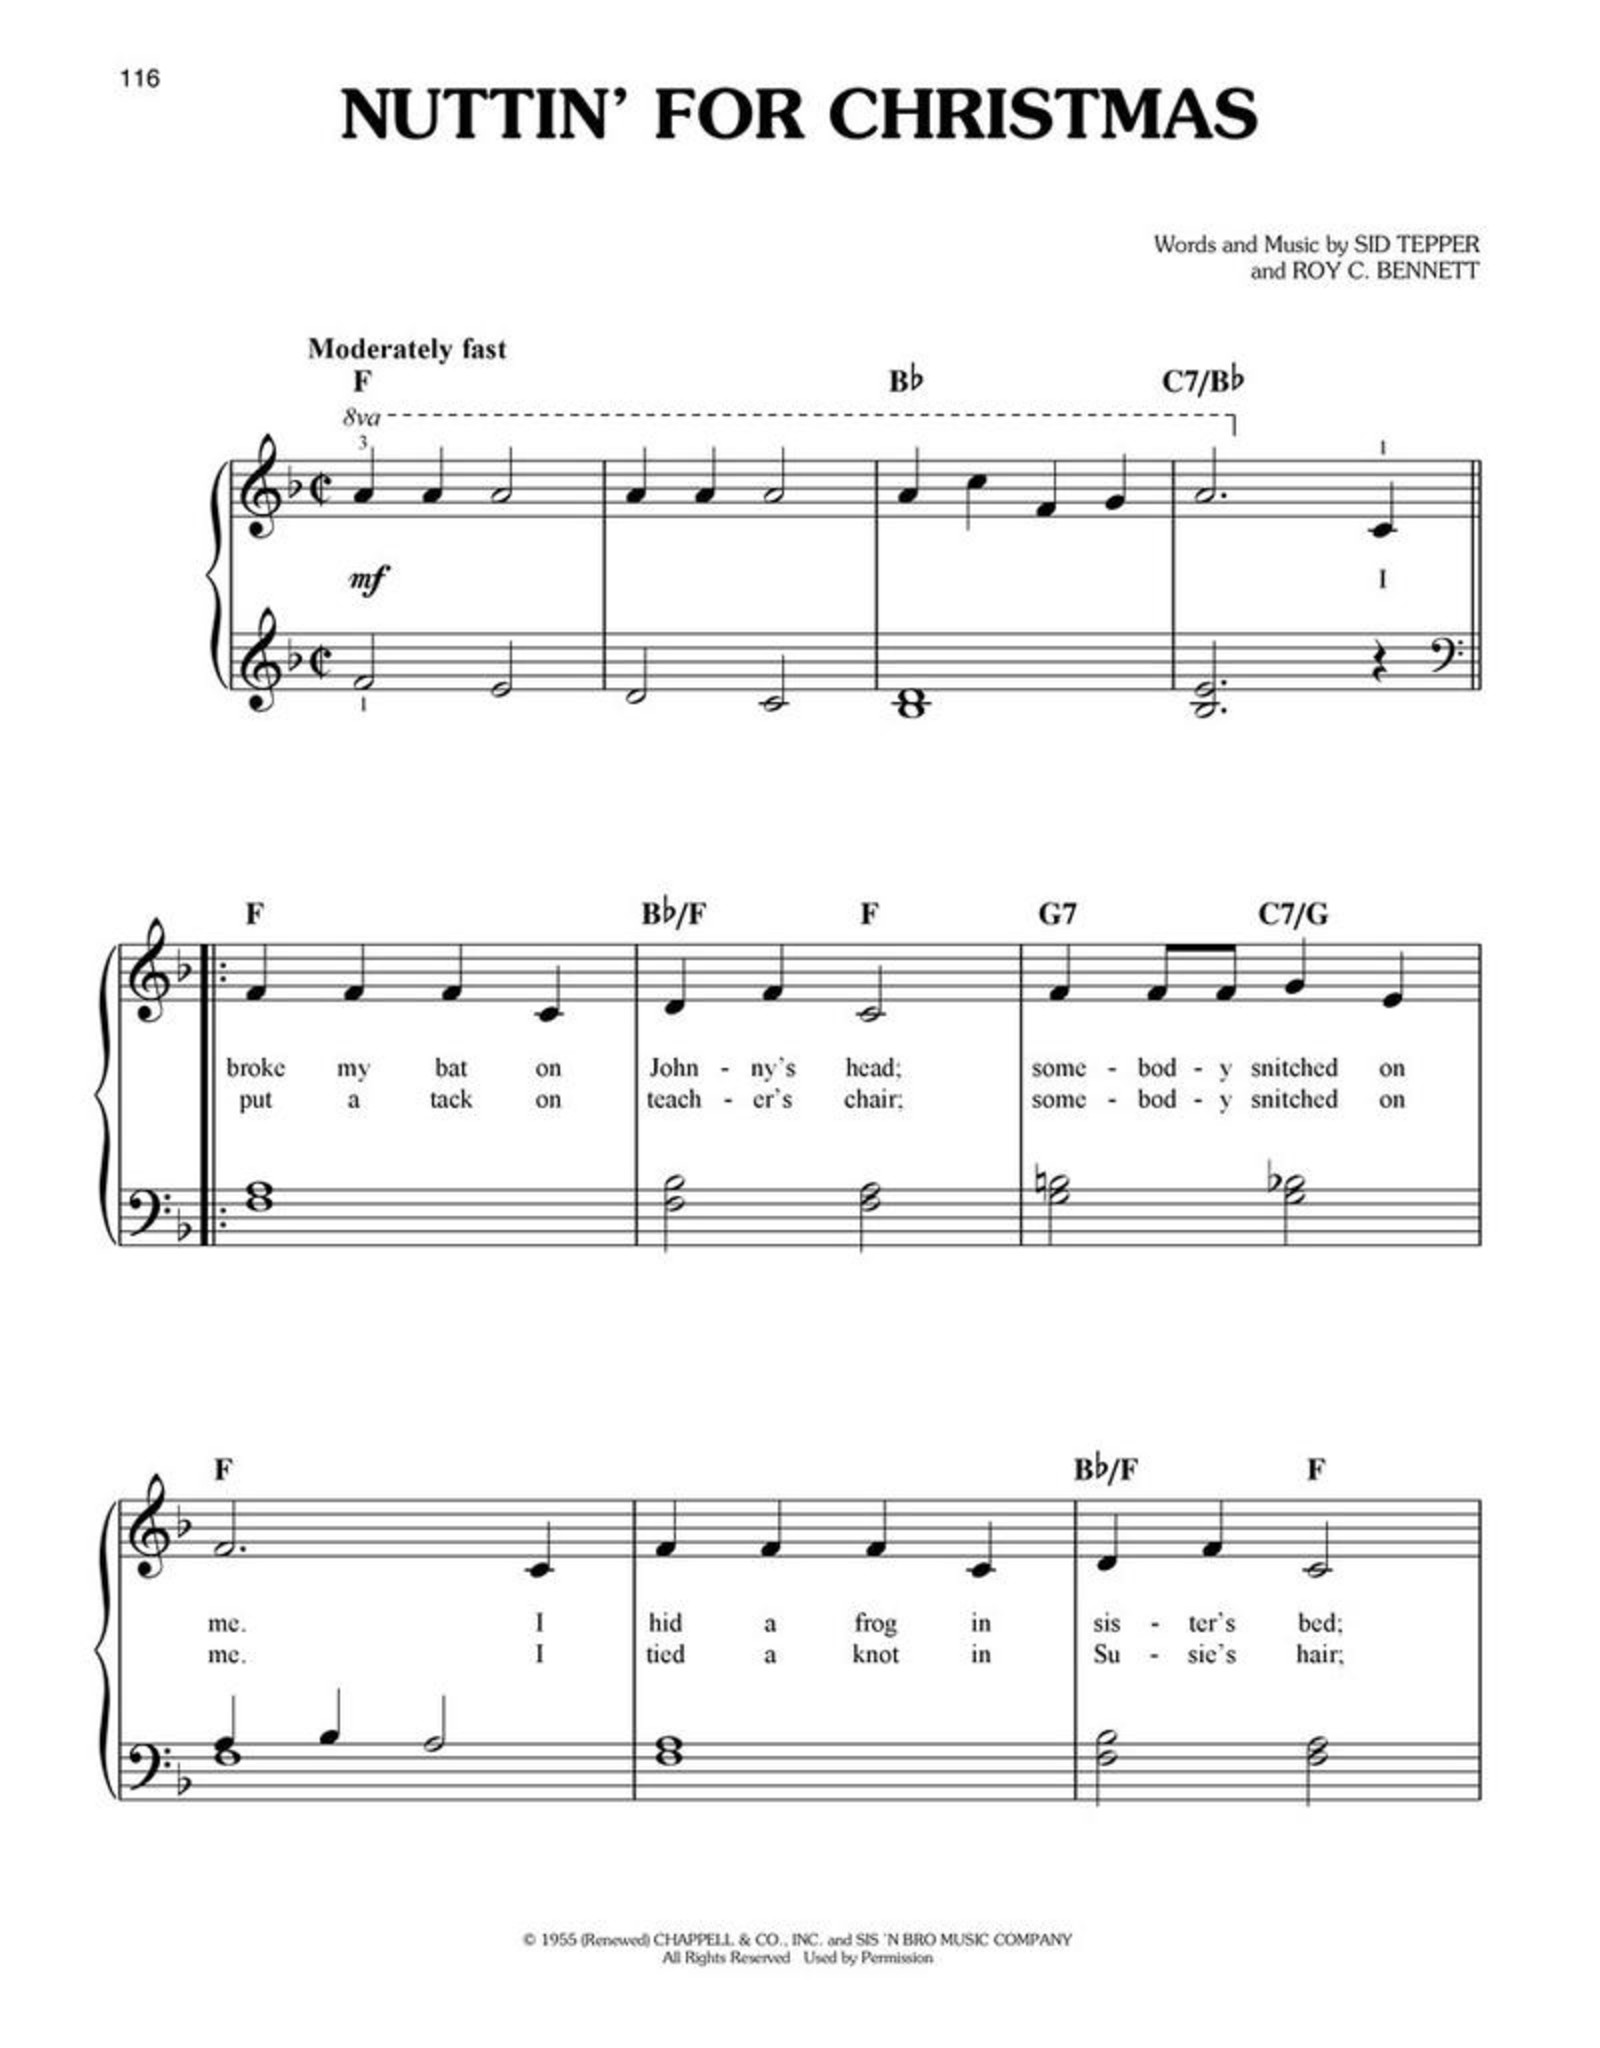 Hal Leonard First 50 Christmas Songs You Should Play on the Piano - Easy Piano